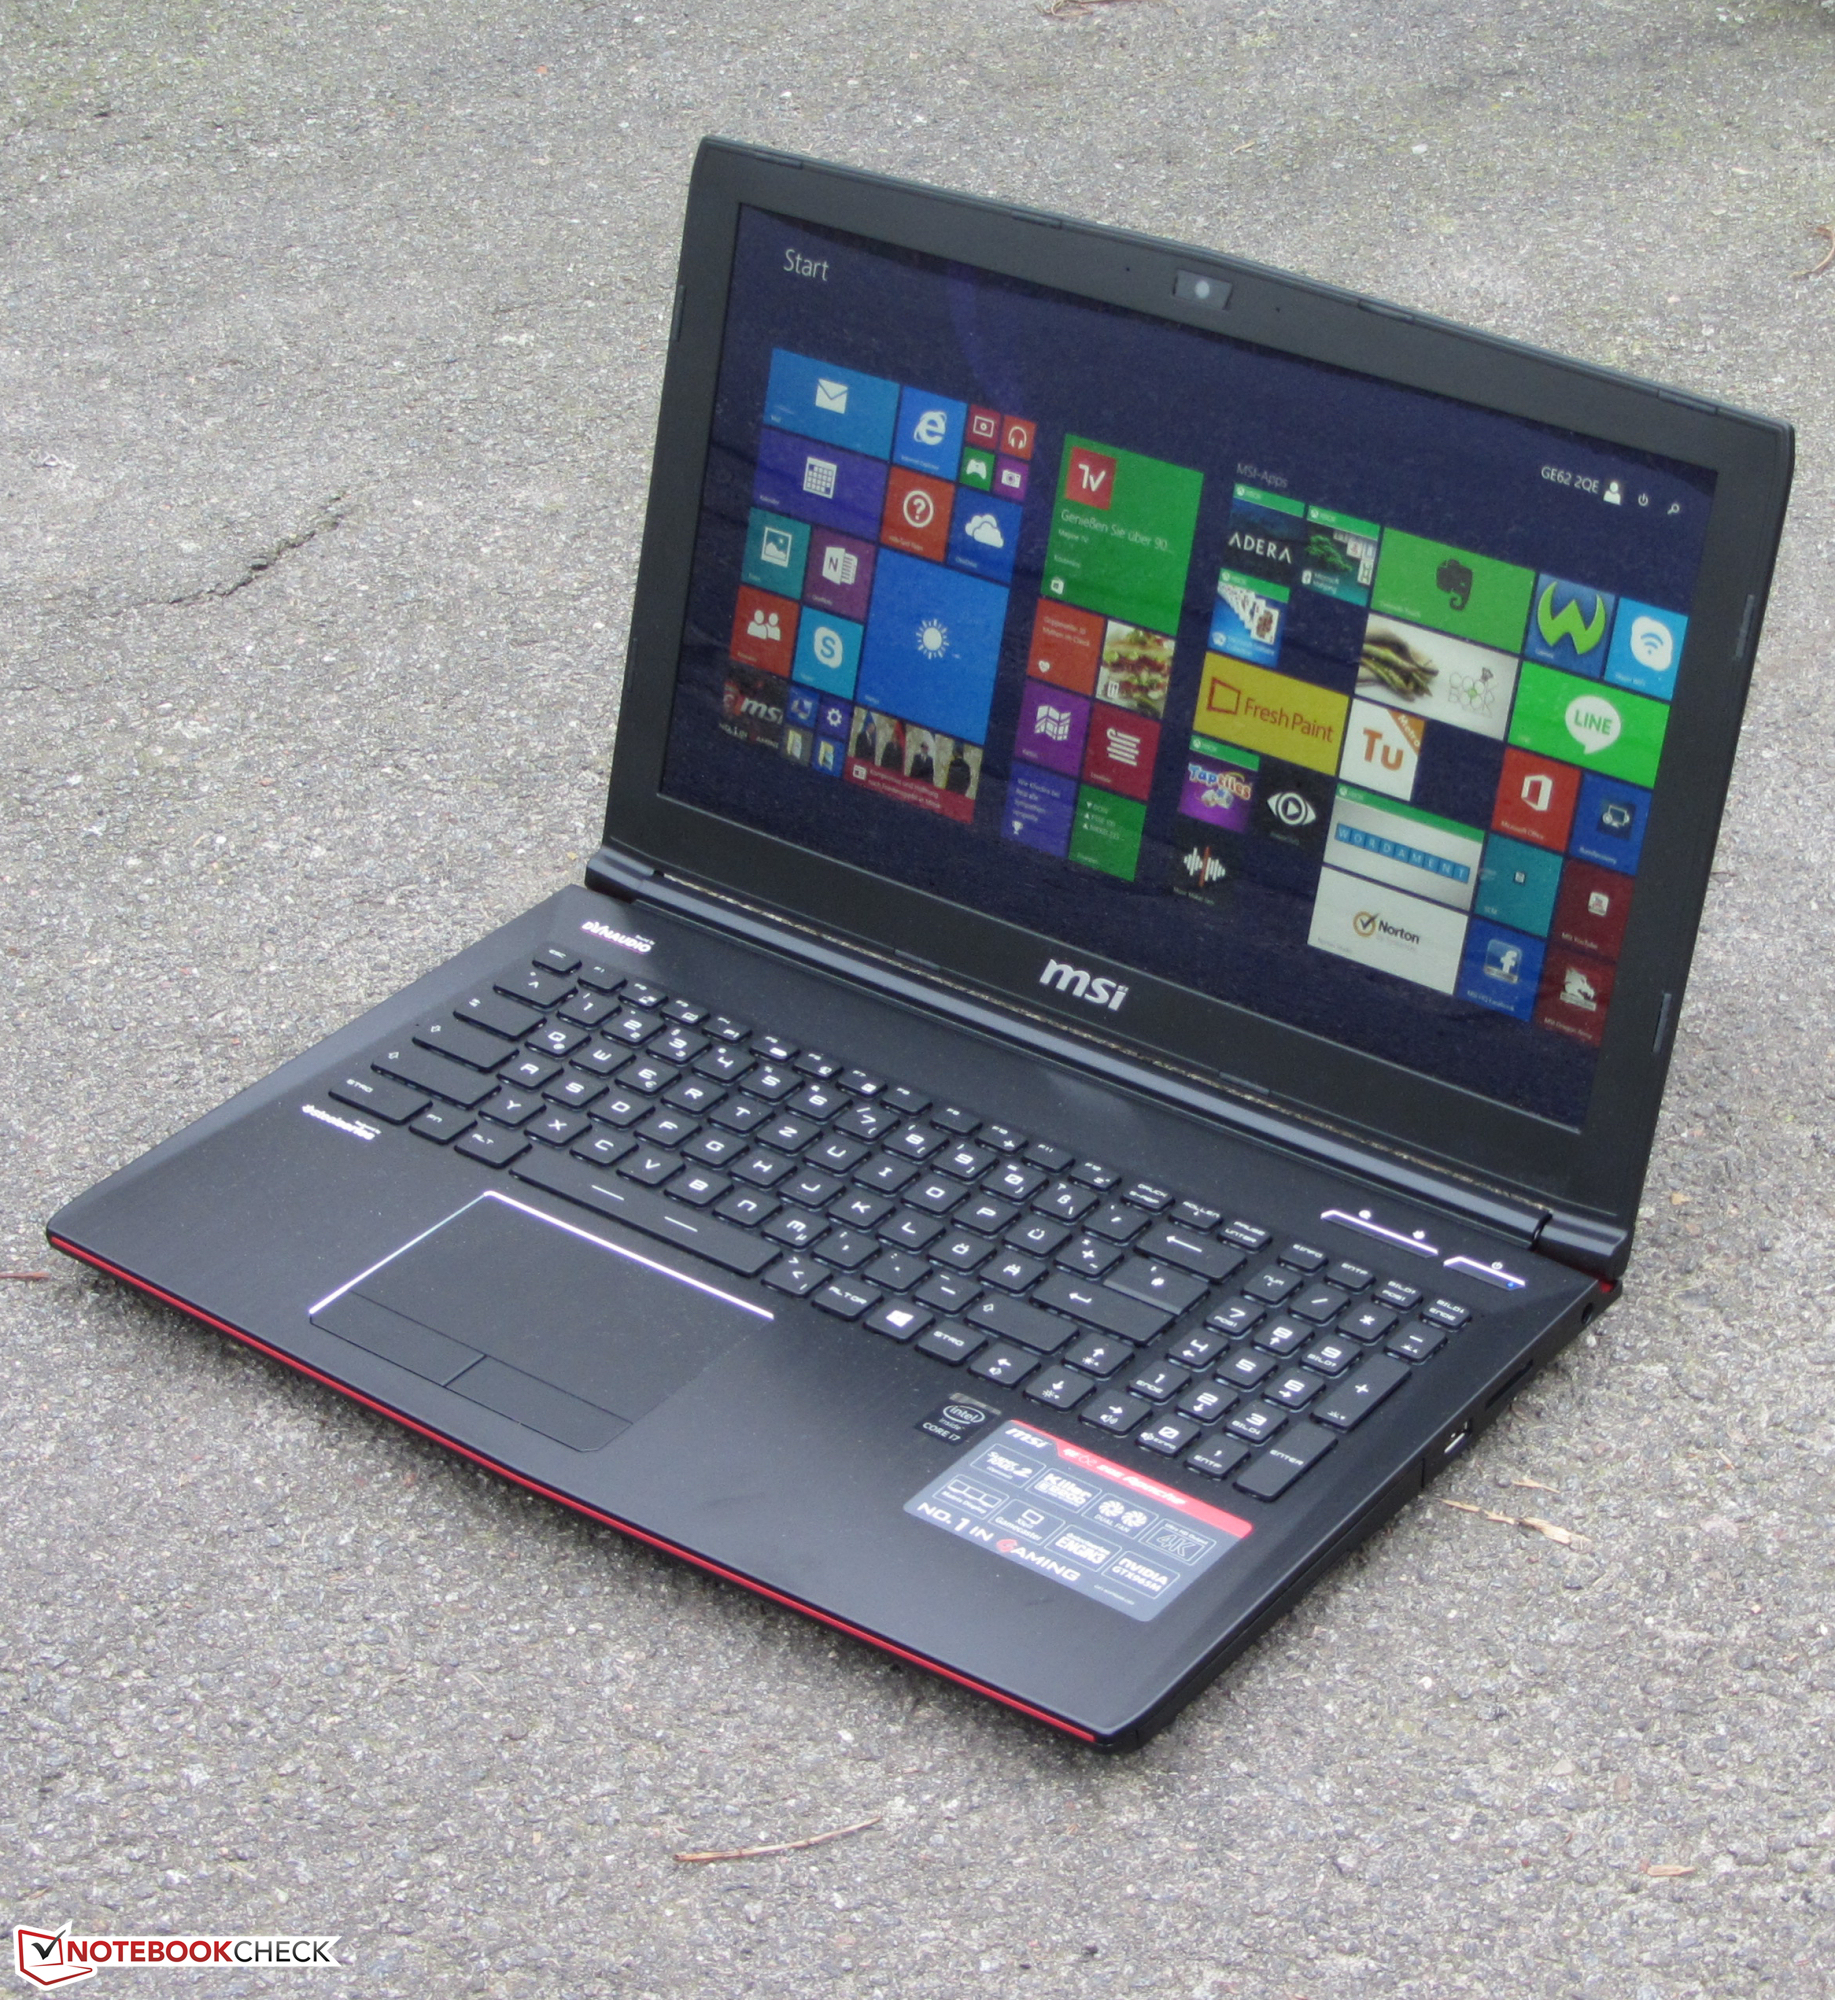 MSI GE62 GTX 970M Notebook Review  NotebookCheck.net Reviews